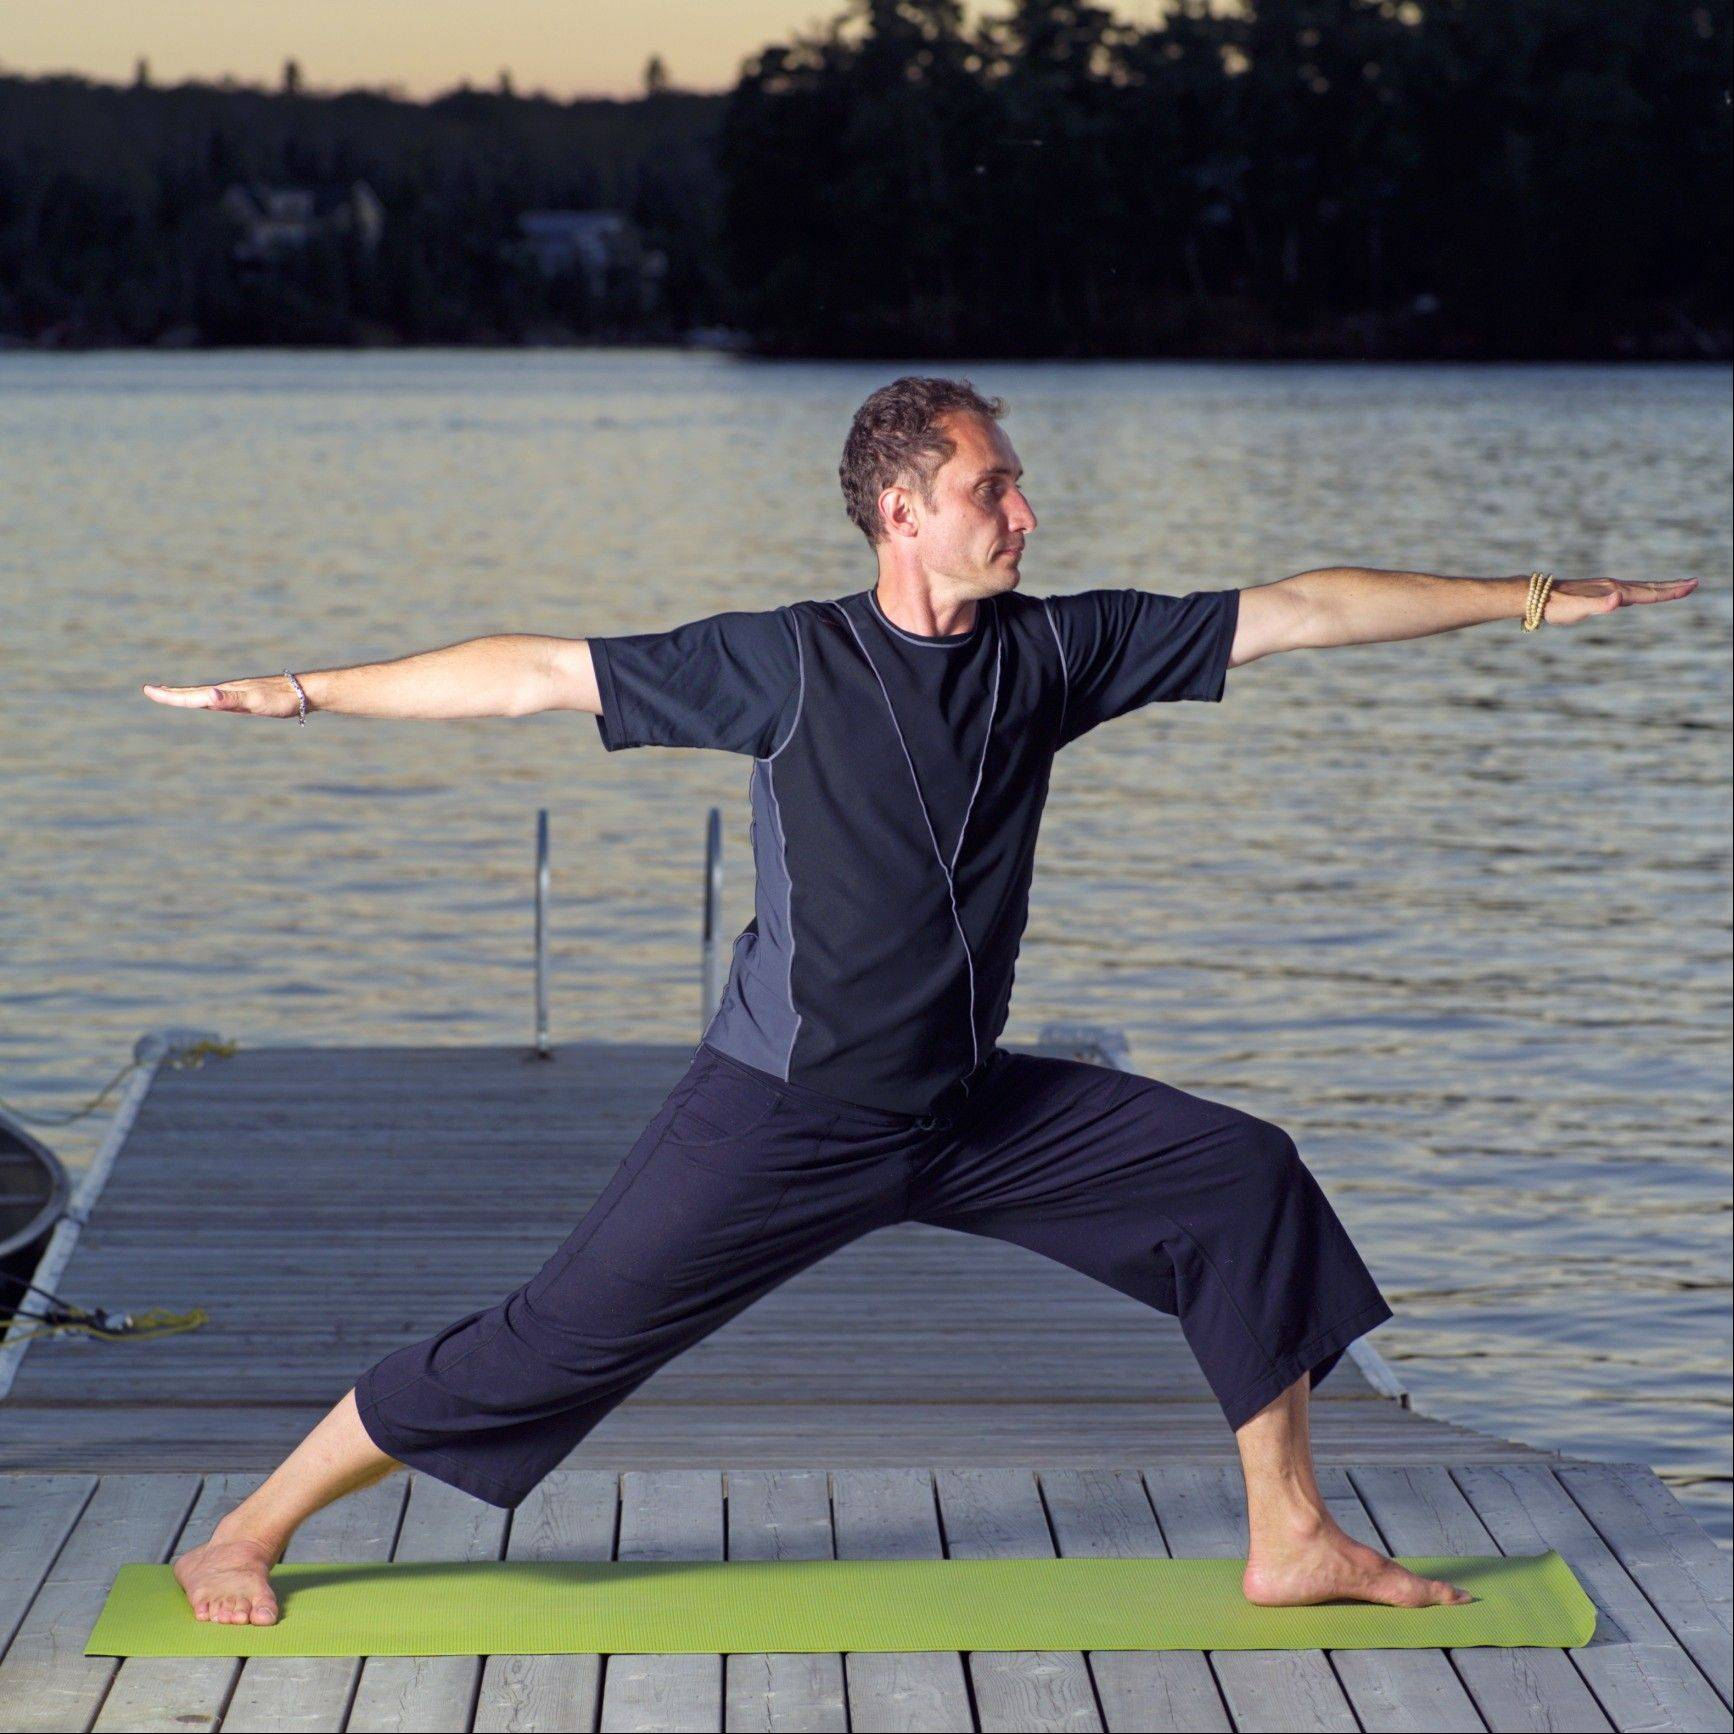 Some men who have started doing yoga say they eventually get hooked on it after realizing how good they feel.